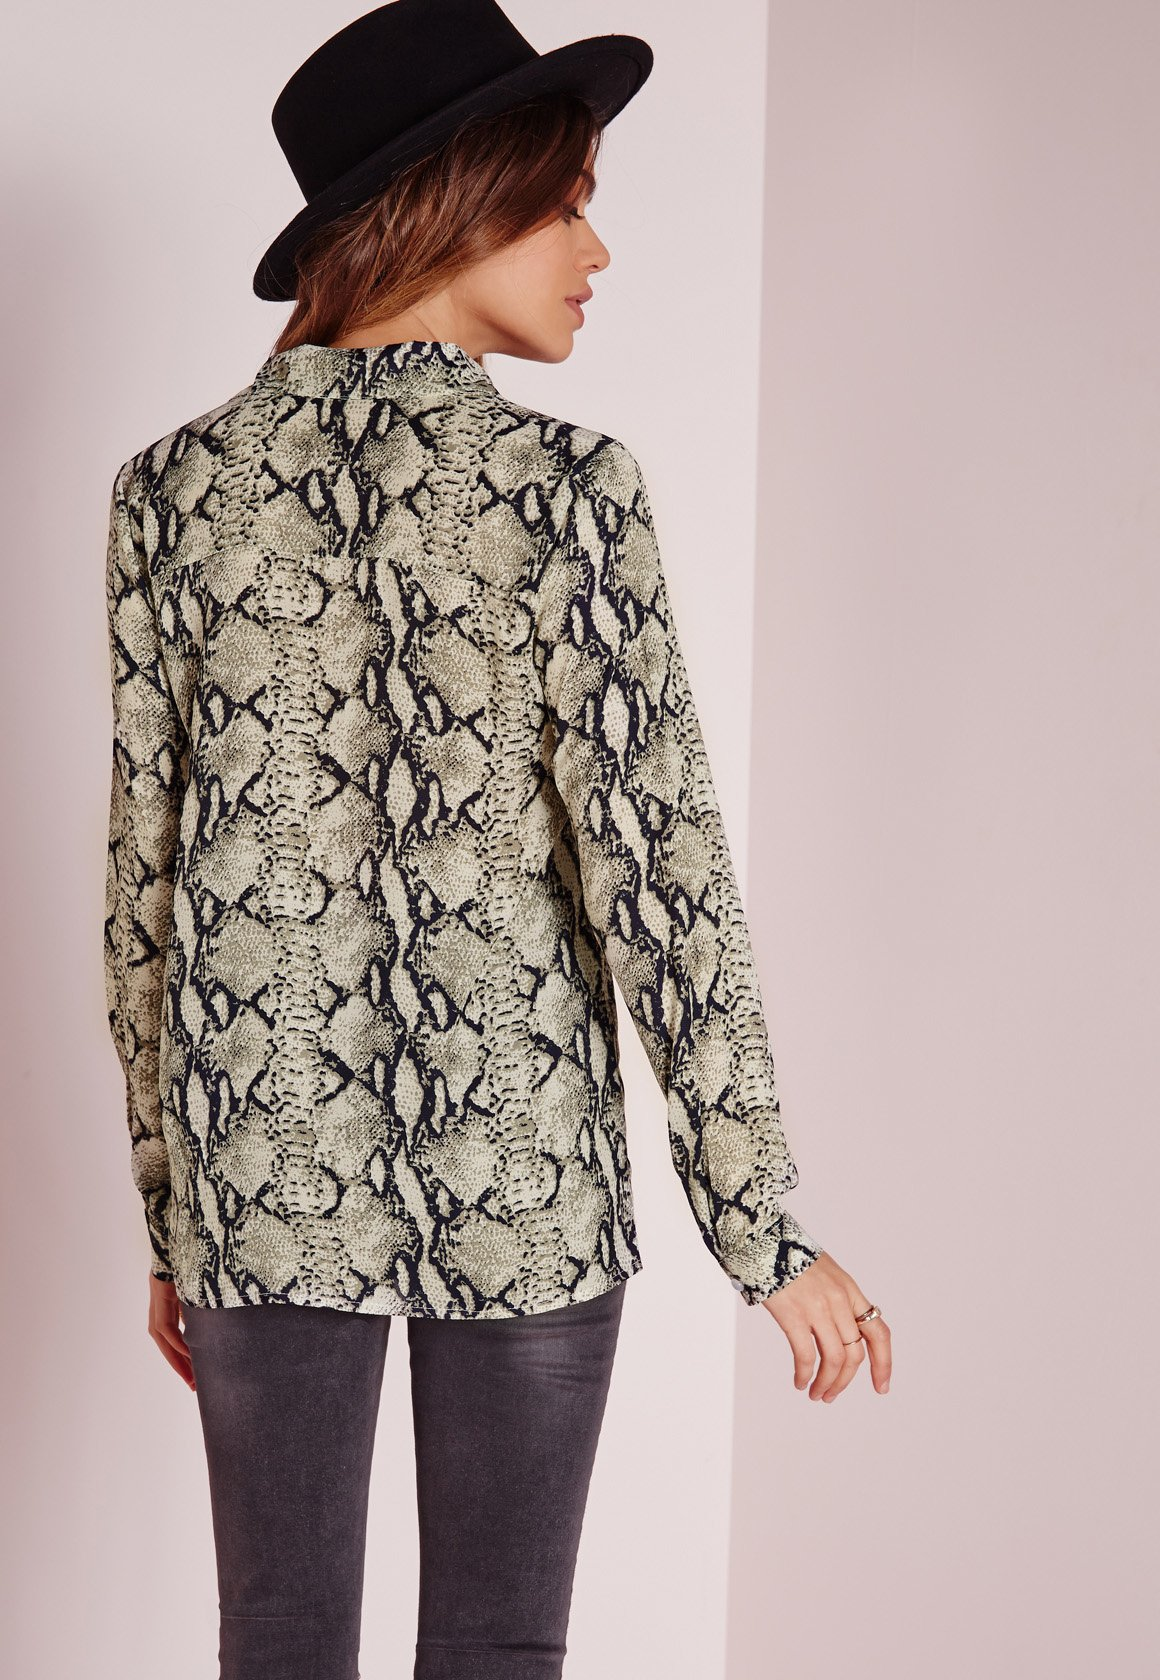 Lyst Missguided Snake Print Lace Up Blouse Multi